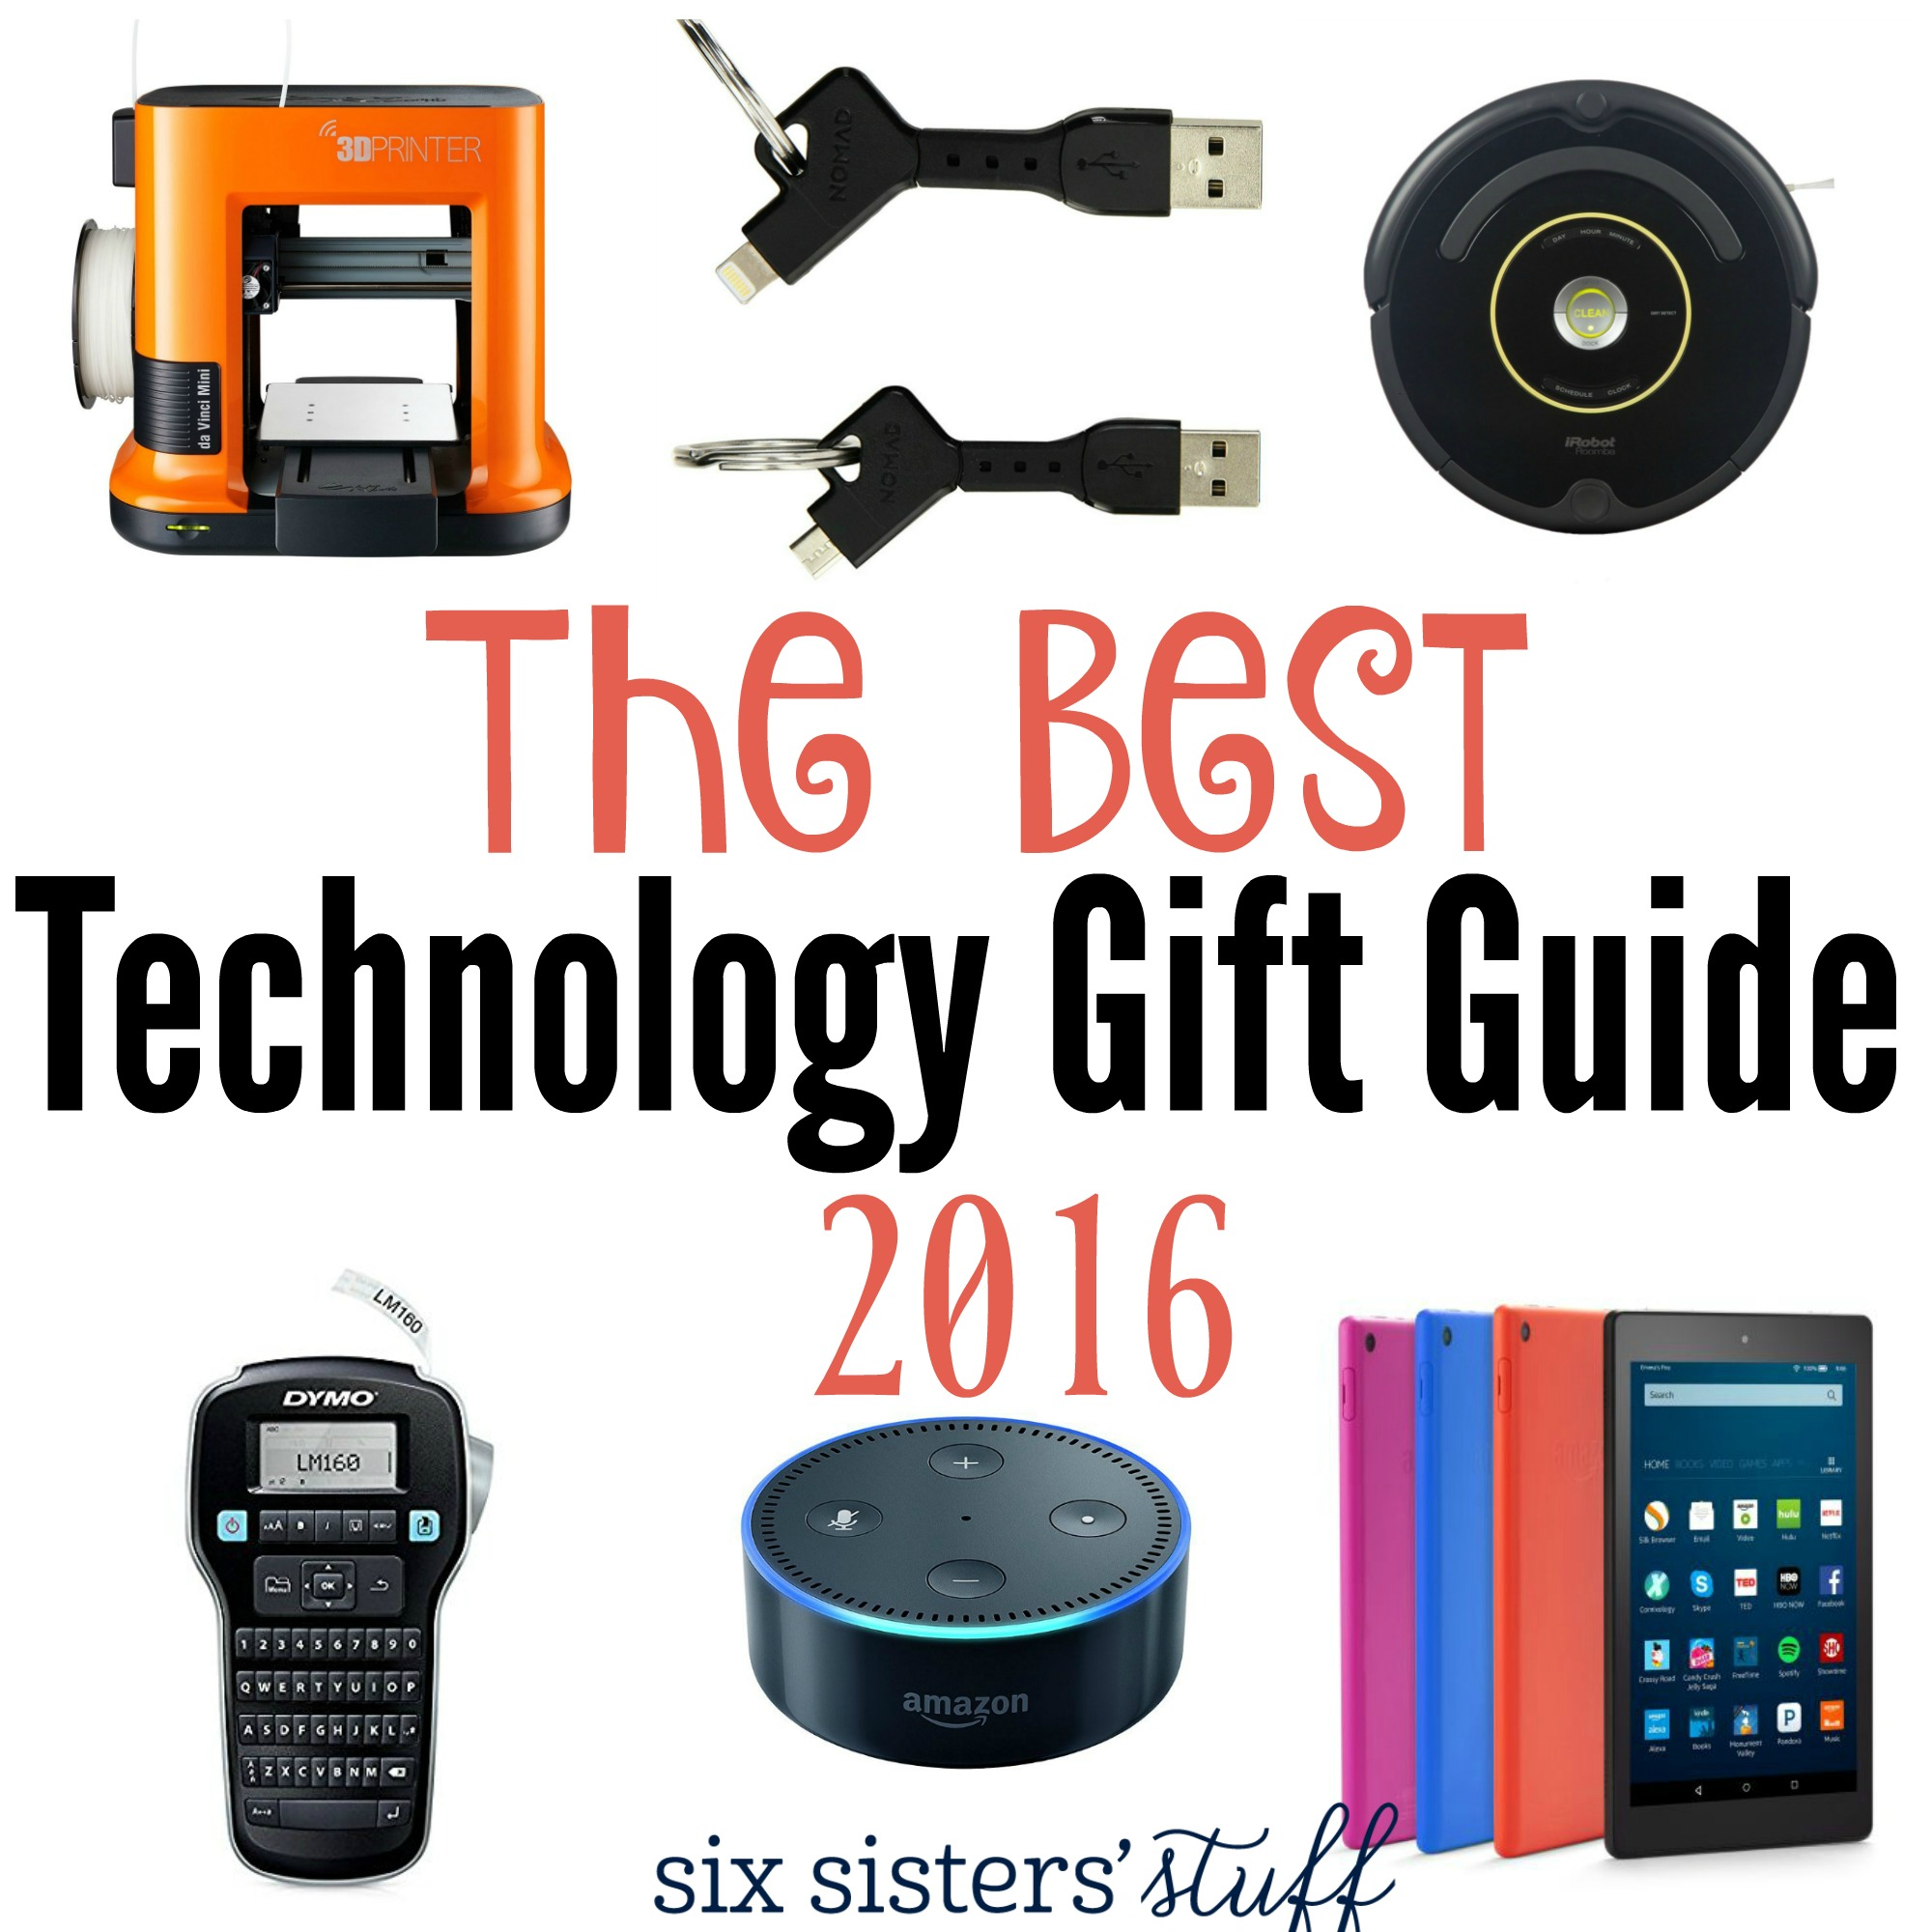 The Best Technology Gift Guide 2016